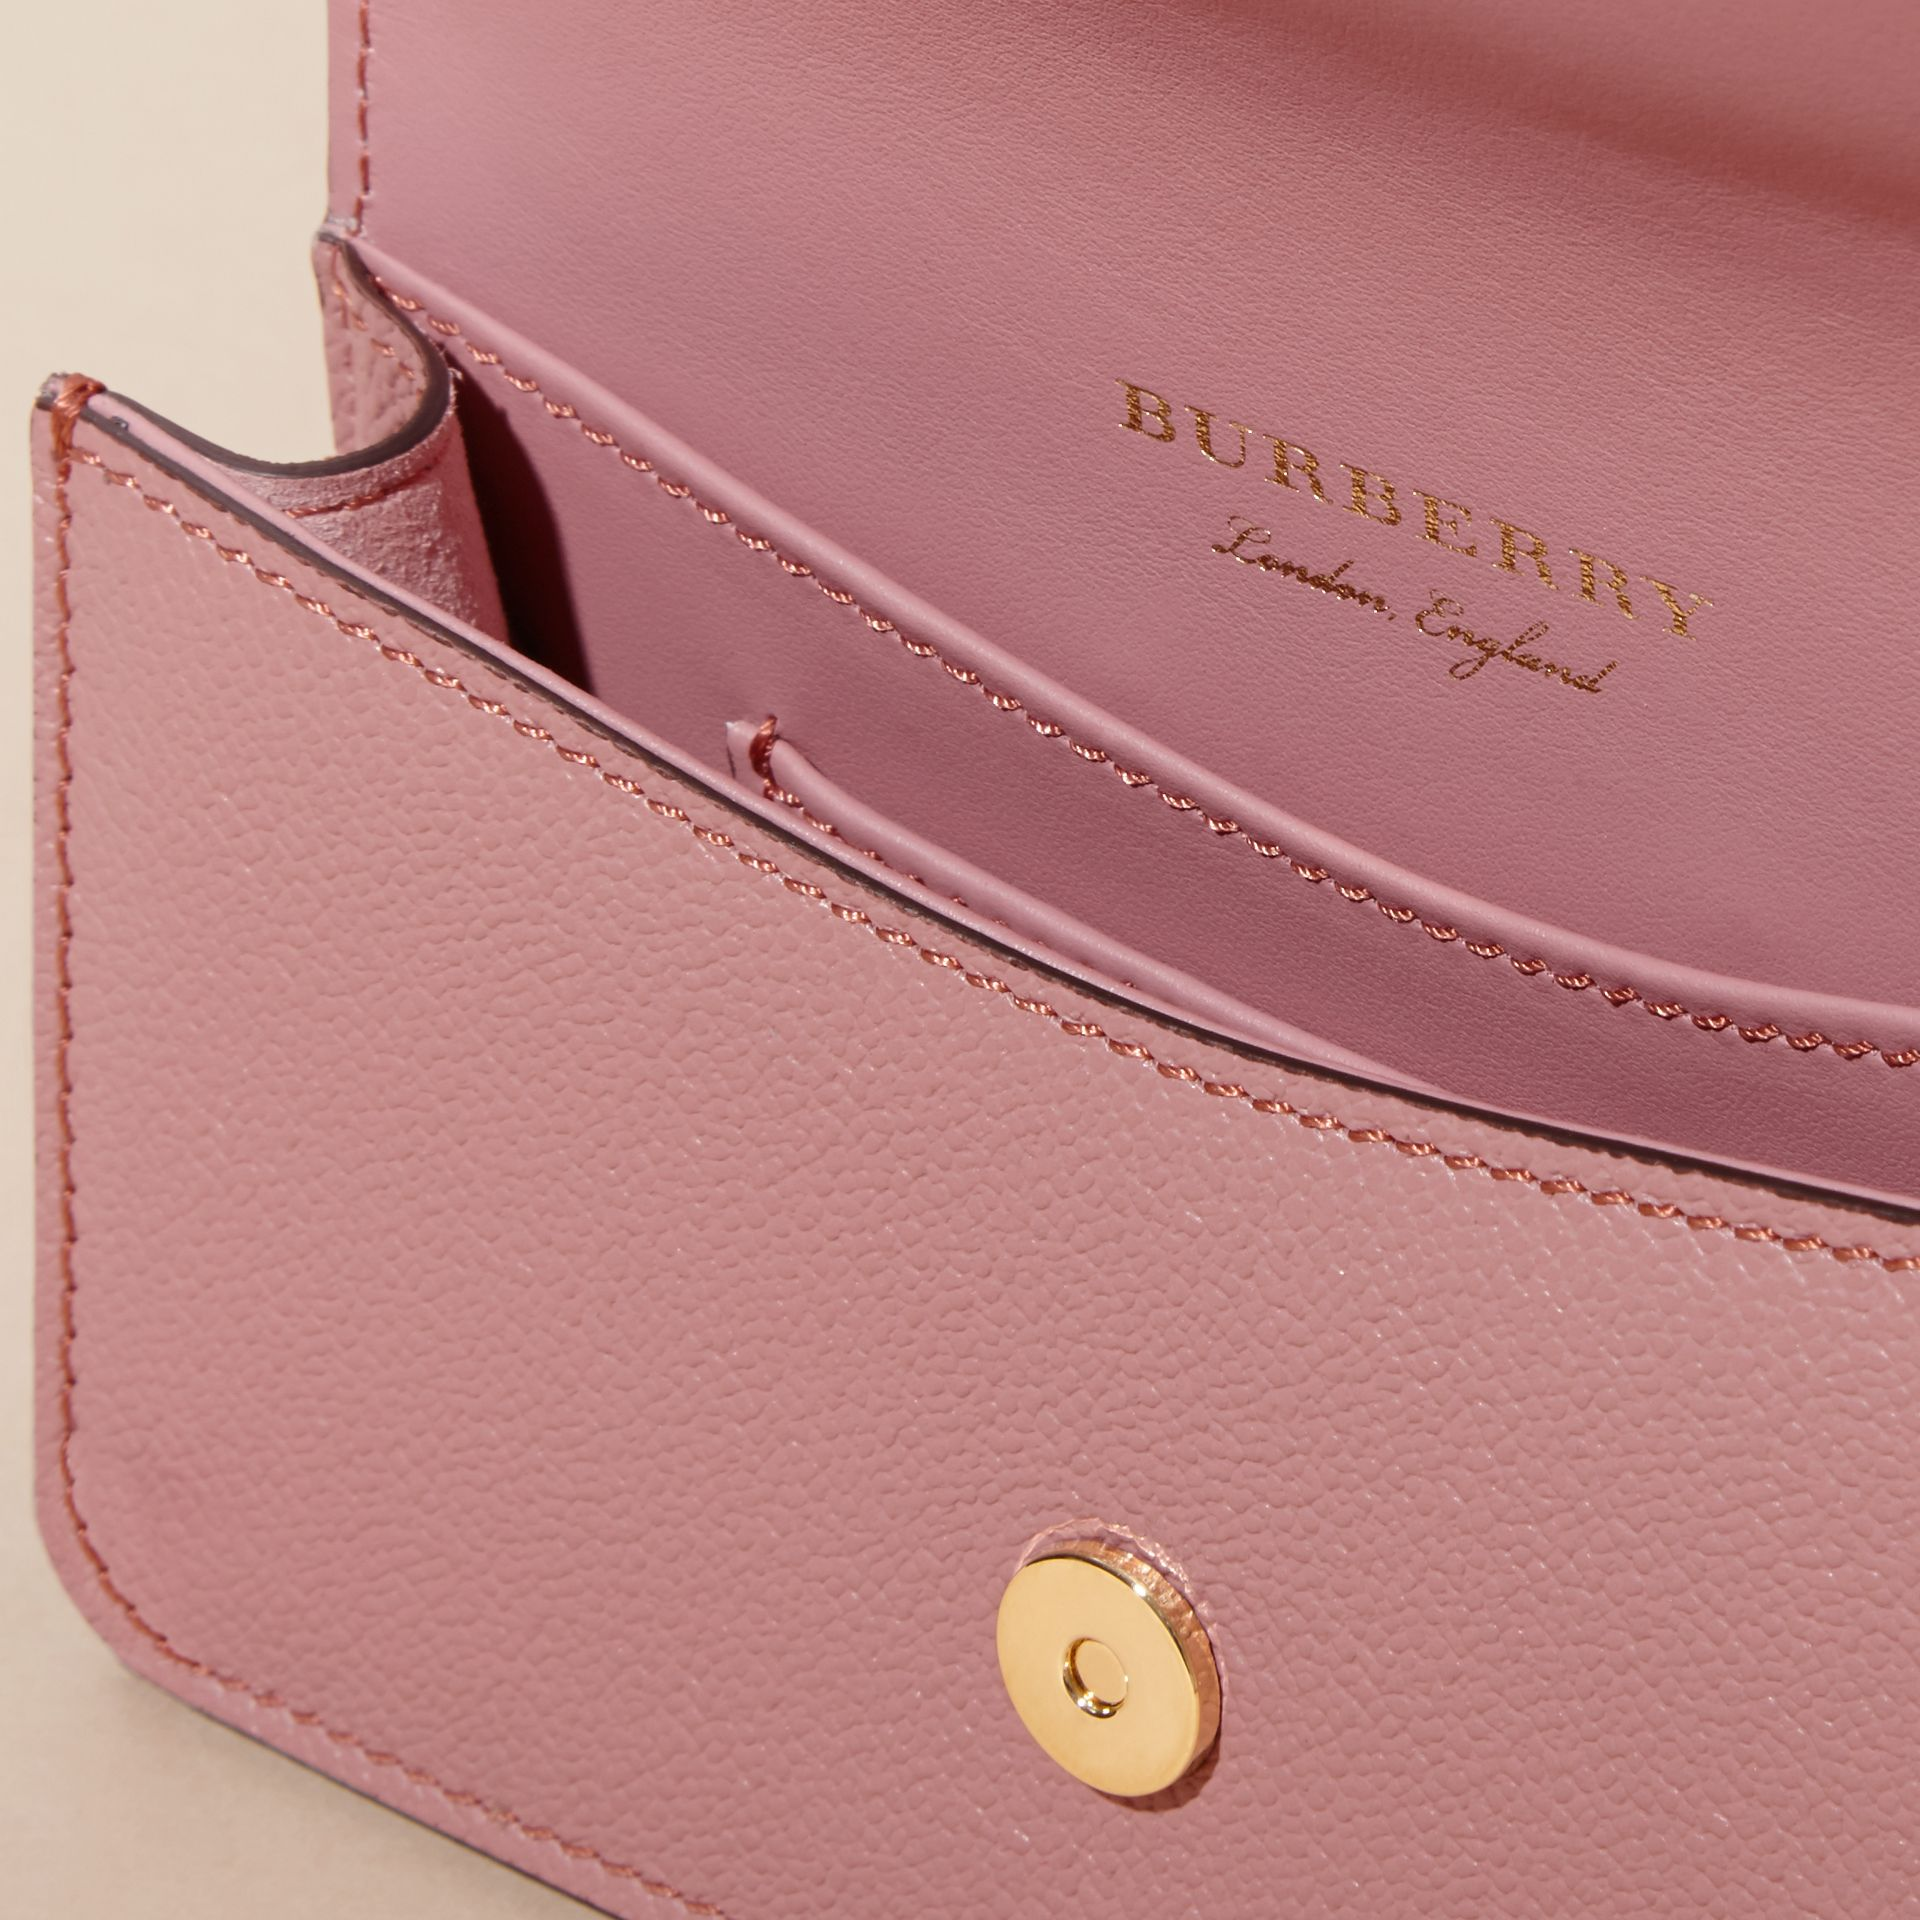 The Mini Buckle Bag in Grainy Leather in Dusty Pink - Women | Burberry - gallery image 5